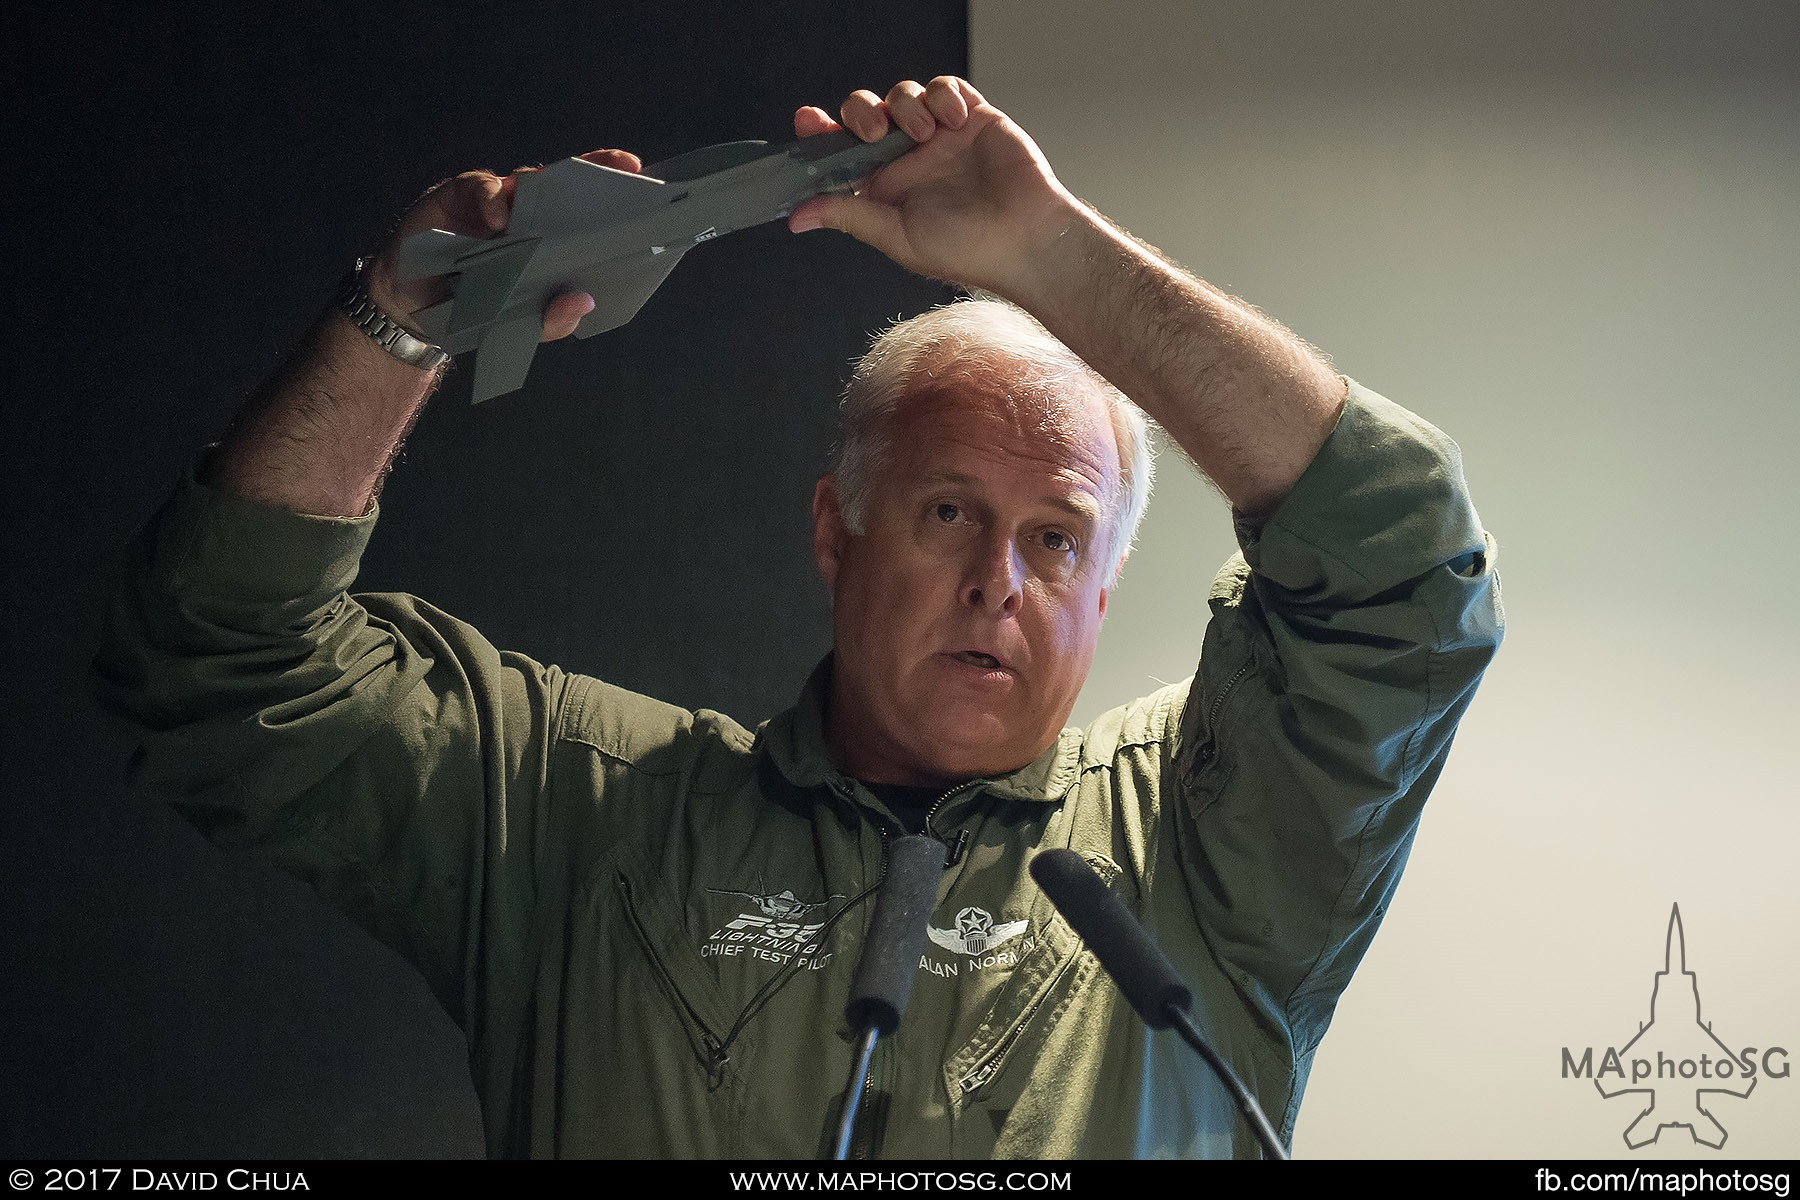 3. Lockheed Martin chief test pilot Alan Norman shows how the F-35A aerial display will look like using a model as he goes through the whole segment of the demo during a press conference.